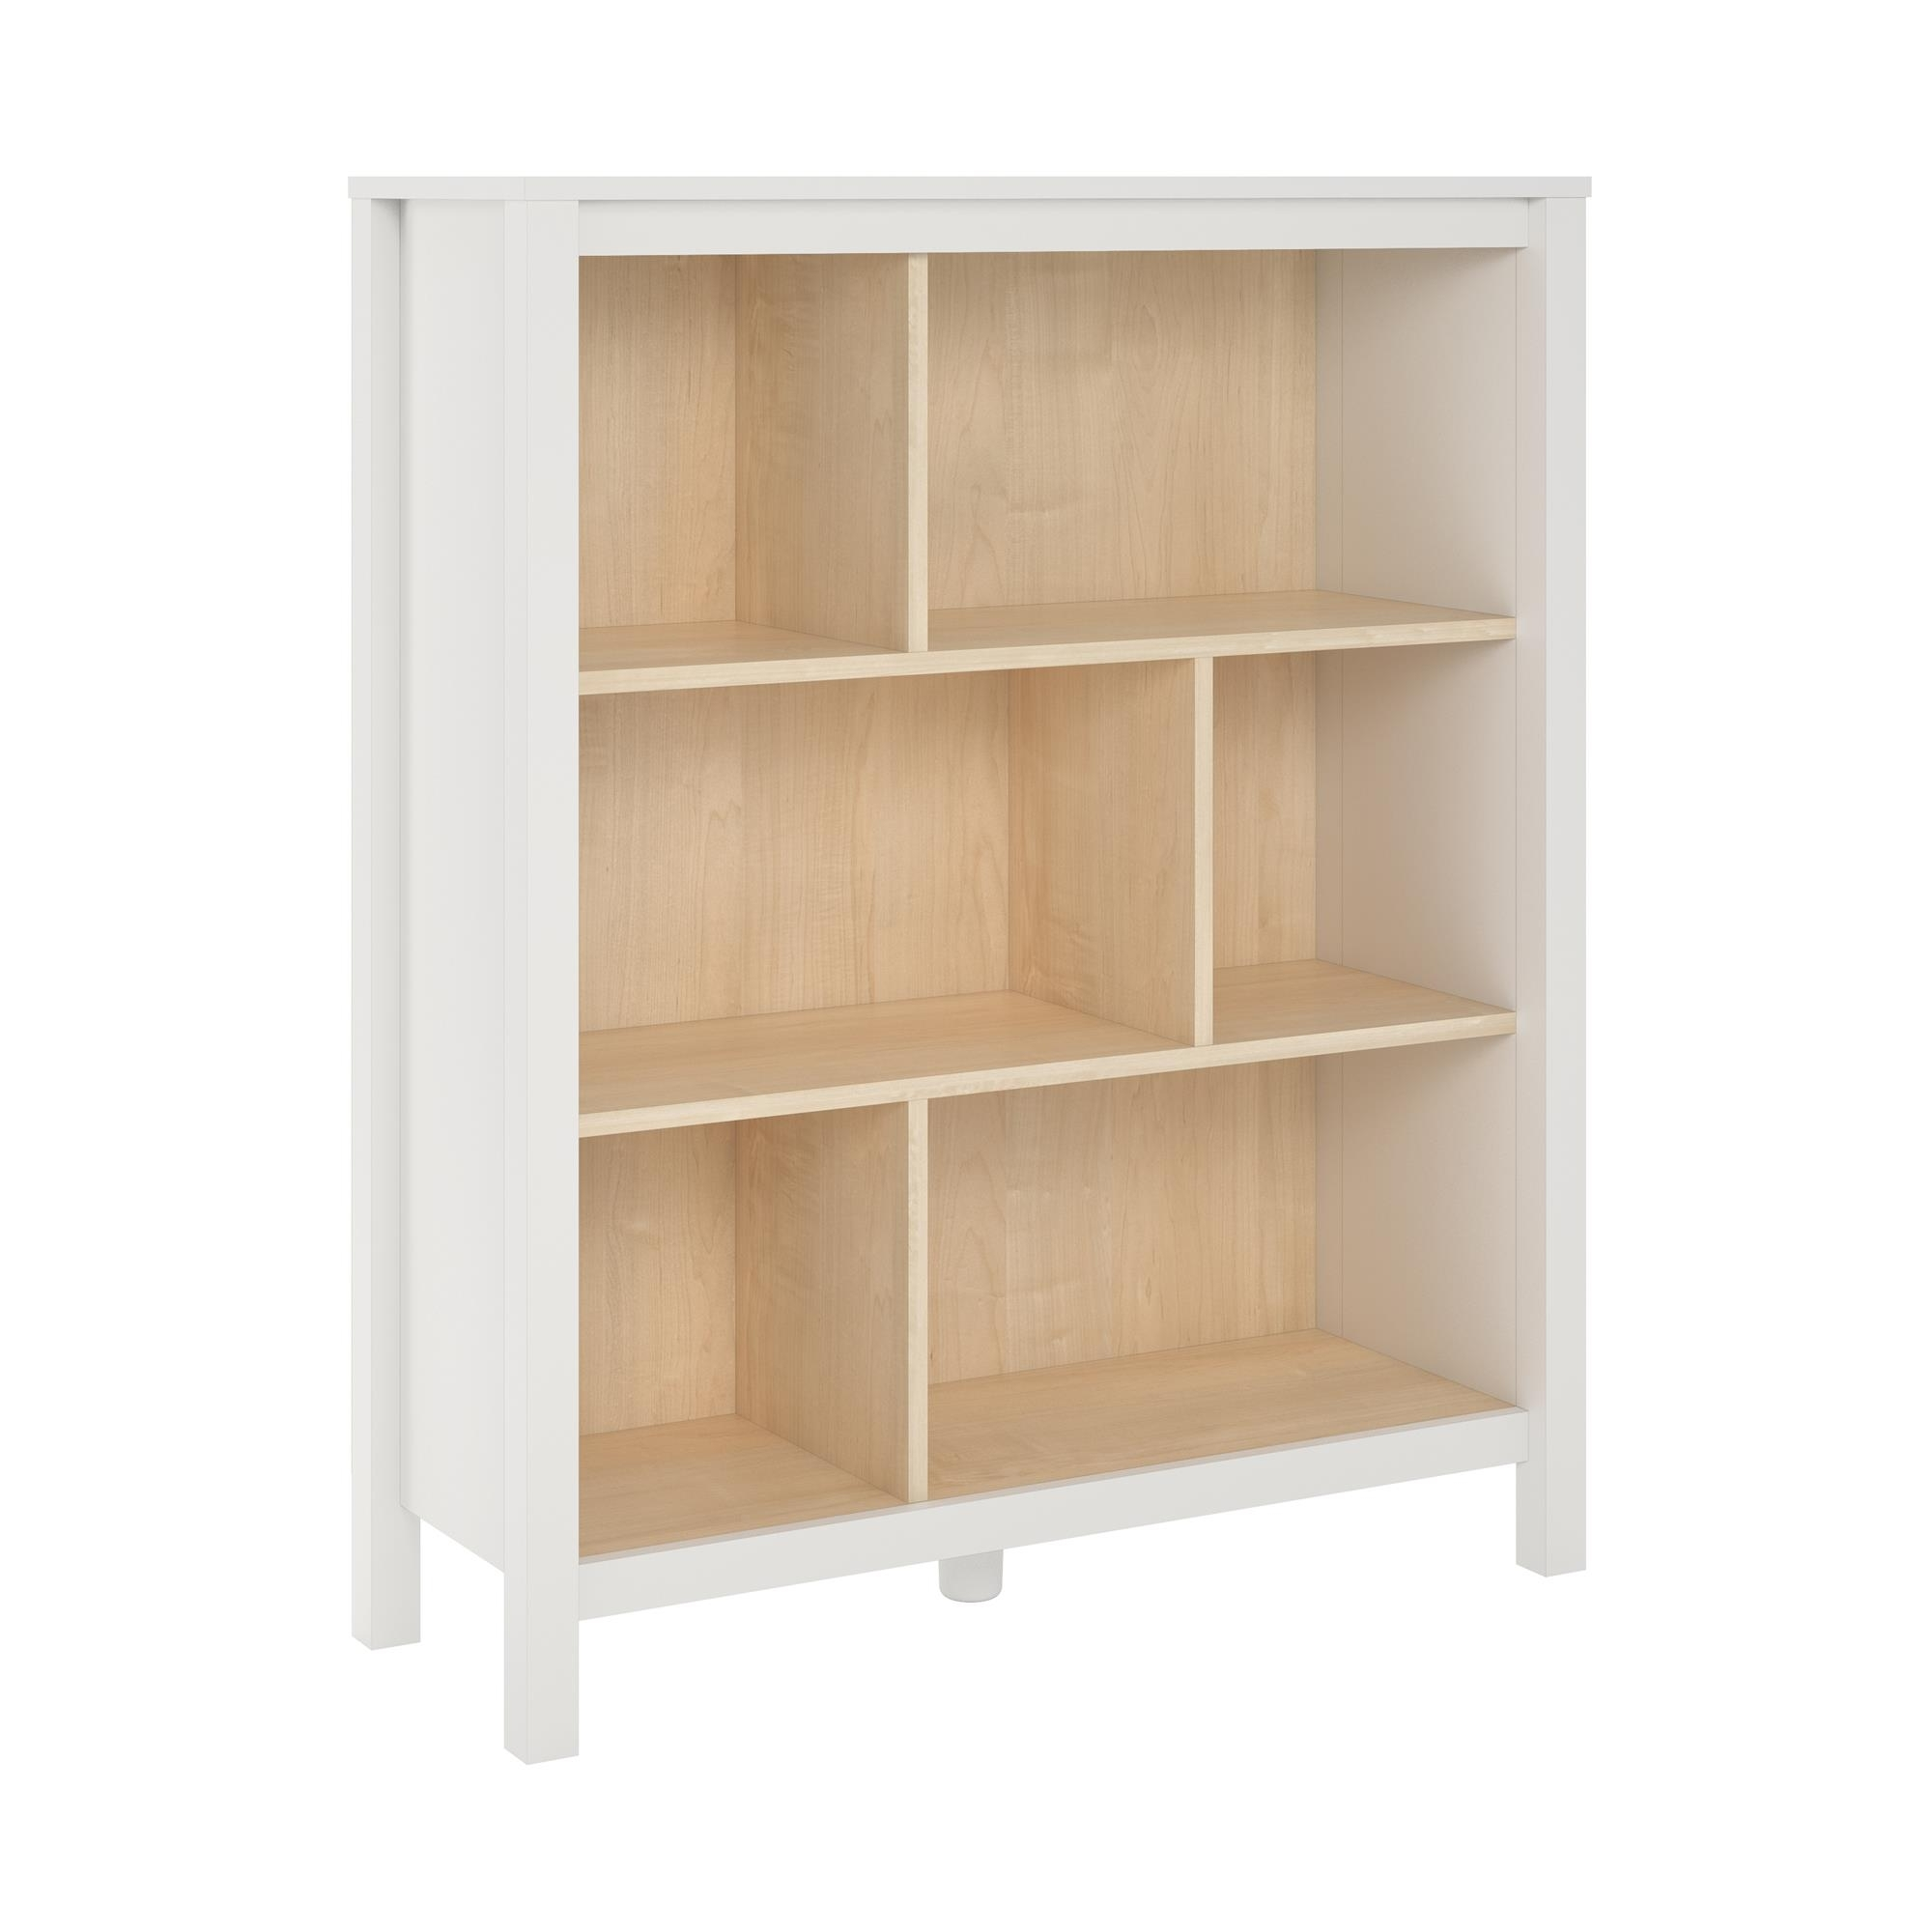 Best And Newest Bookcases For Toddlers Throughout Kids' Bookcases – Walmart (View 14 of 15)